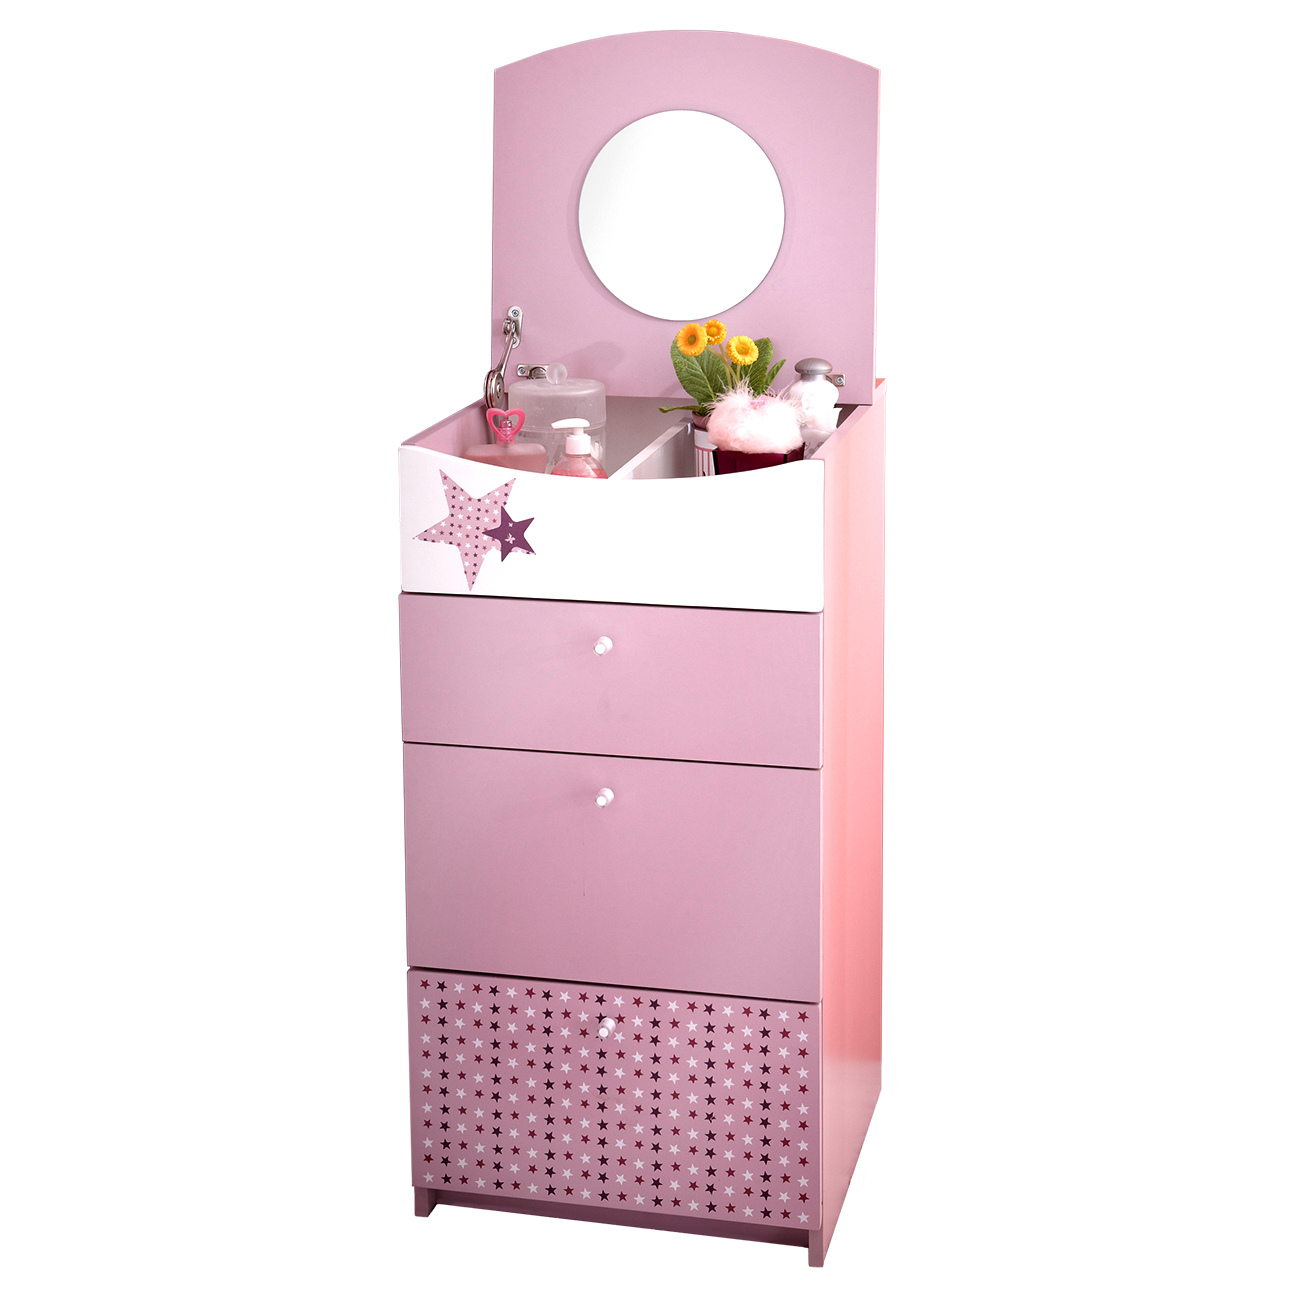 kinderkommode prinzessin schminkschrank m dchen kommode spiegel rosa ebay. Black Bedroom Furniture Sets. Home Design Ideas